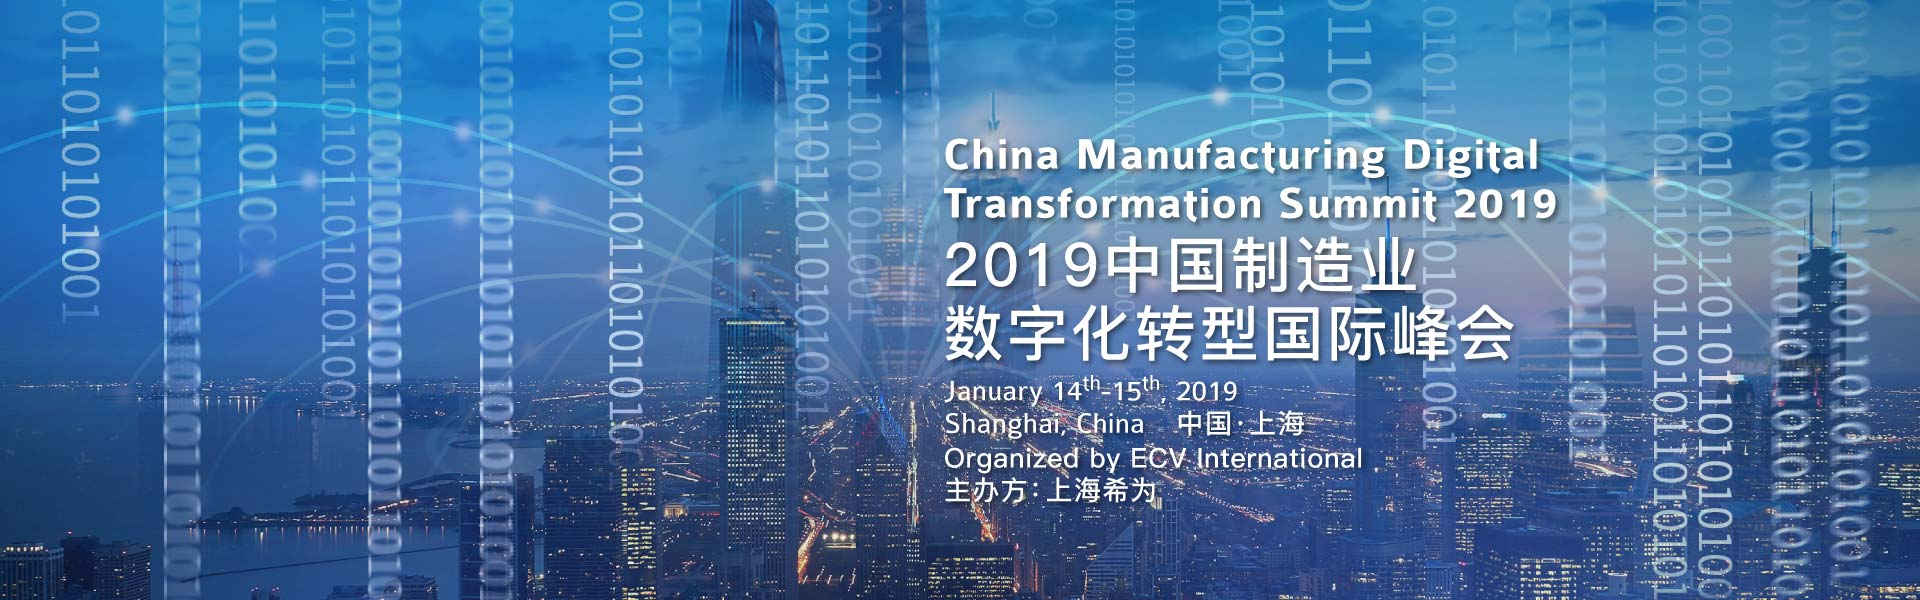 China Manufacturing Digital Transformation Summit 2019_ECV International